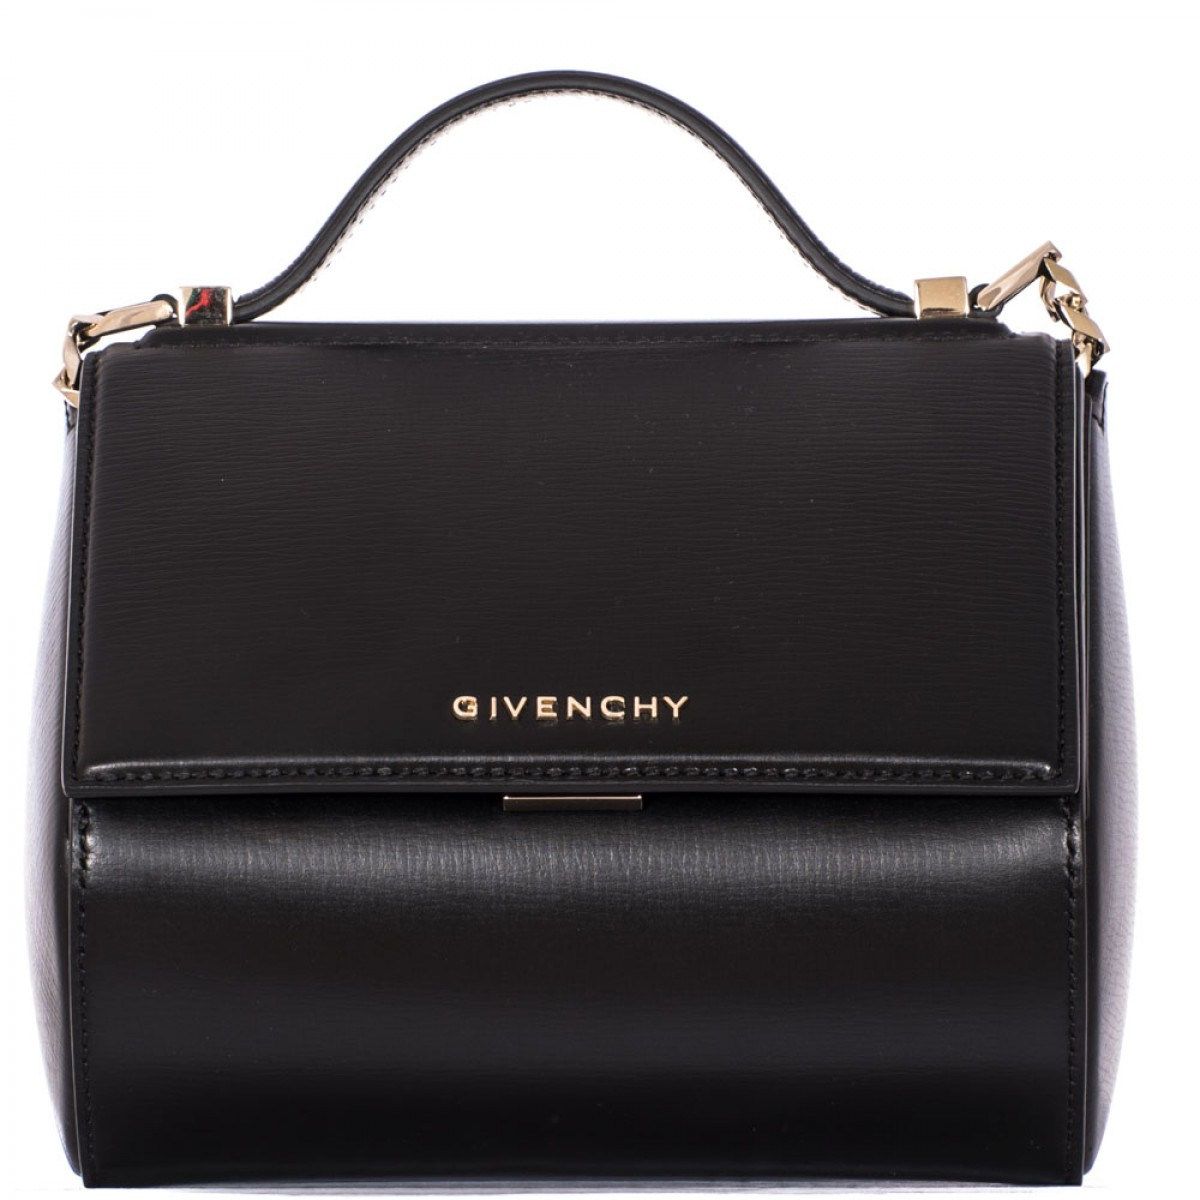 Givenchy Bag Pandora Box  3701e22109e75